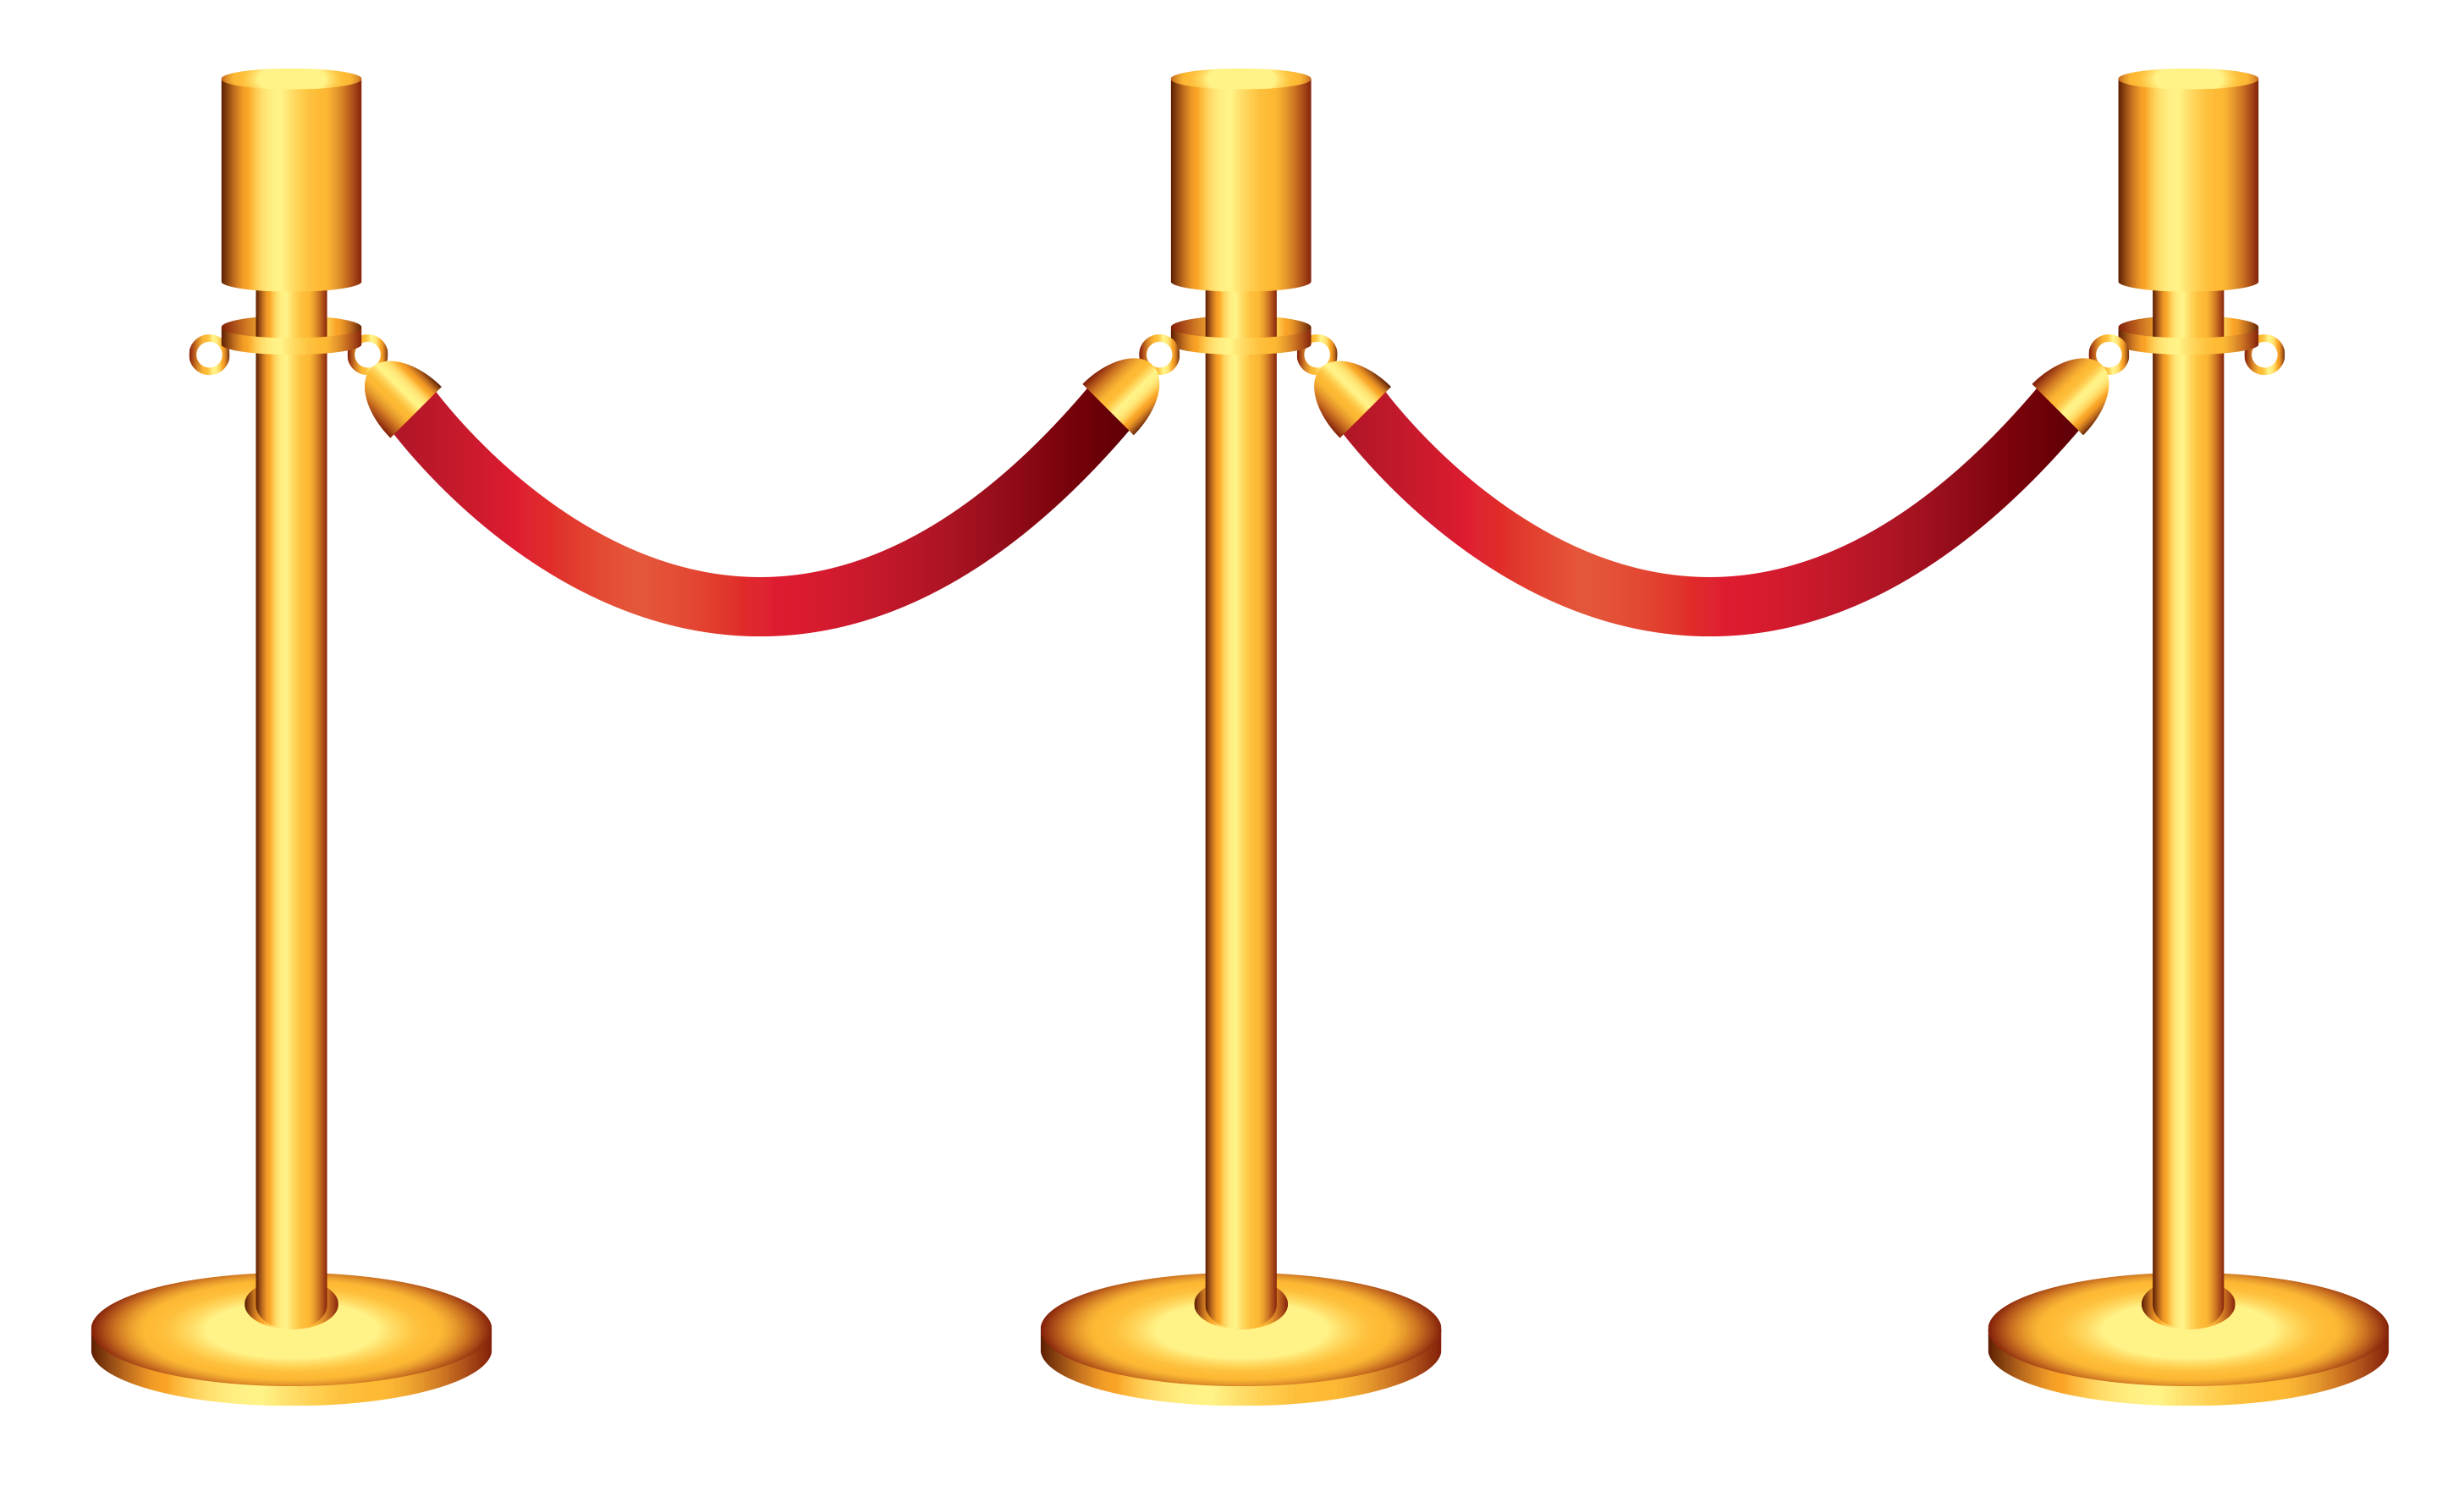 clipart free stock Golden Rope Barricade Transparent PNG Clipart